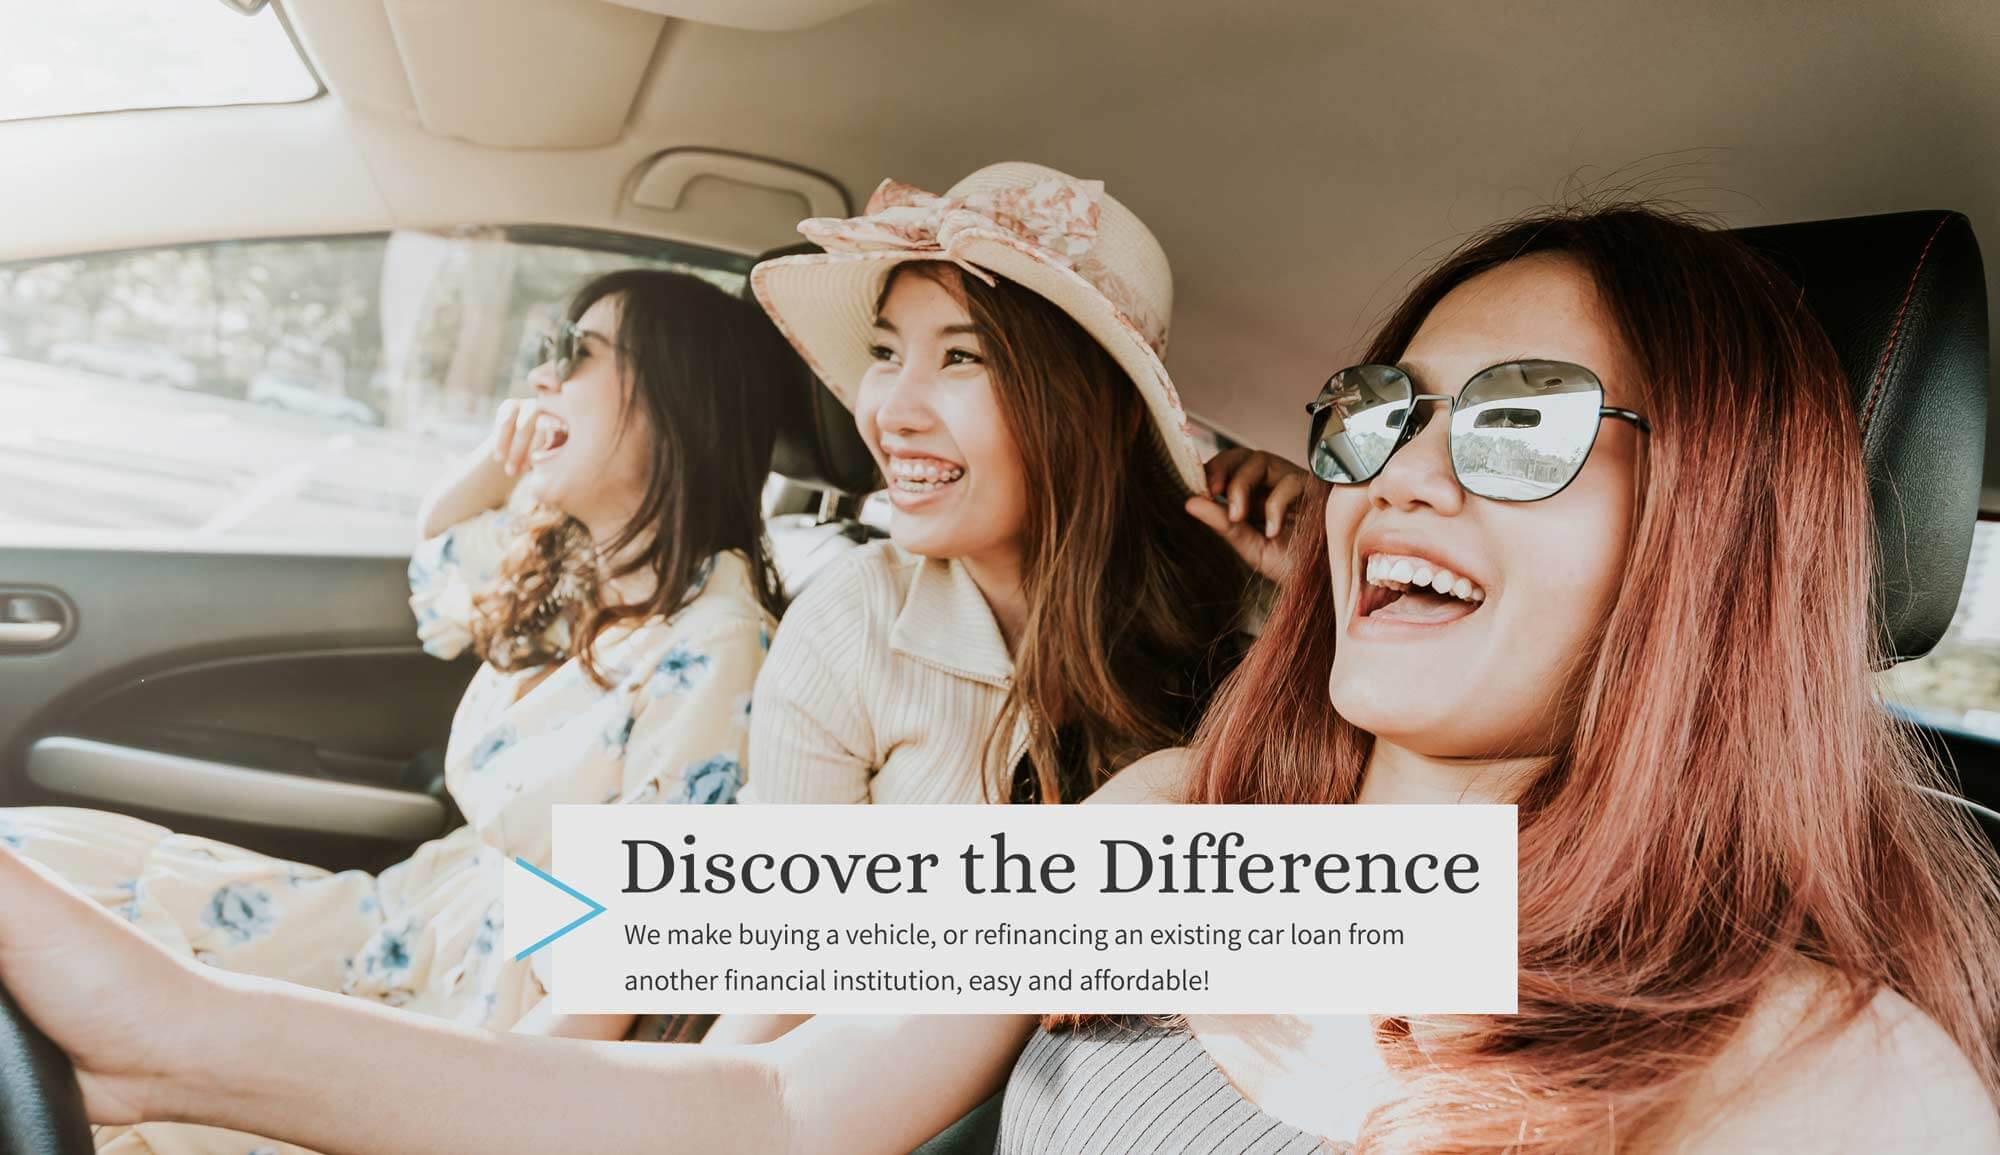 Discover the Difference. We make buying a vehicle, or refinancing an existing car loan from another financial institution, easy and affordable!